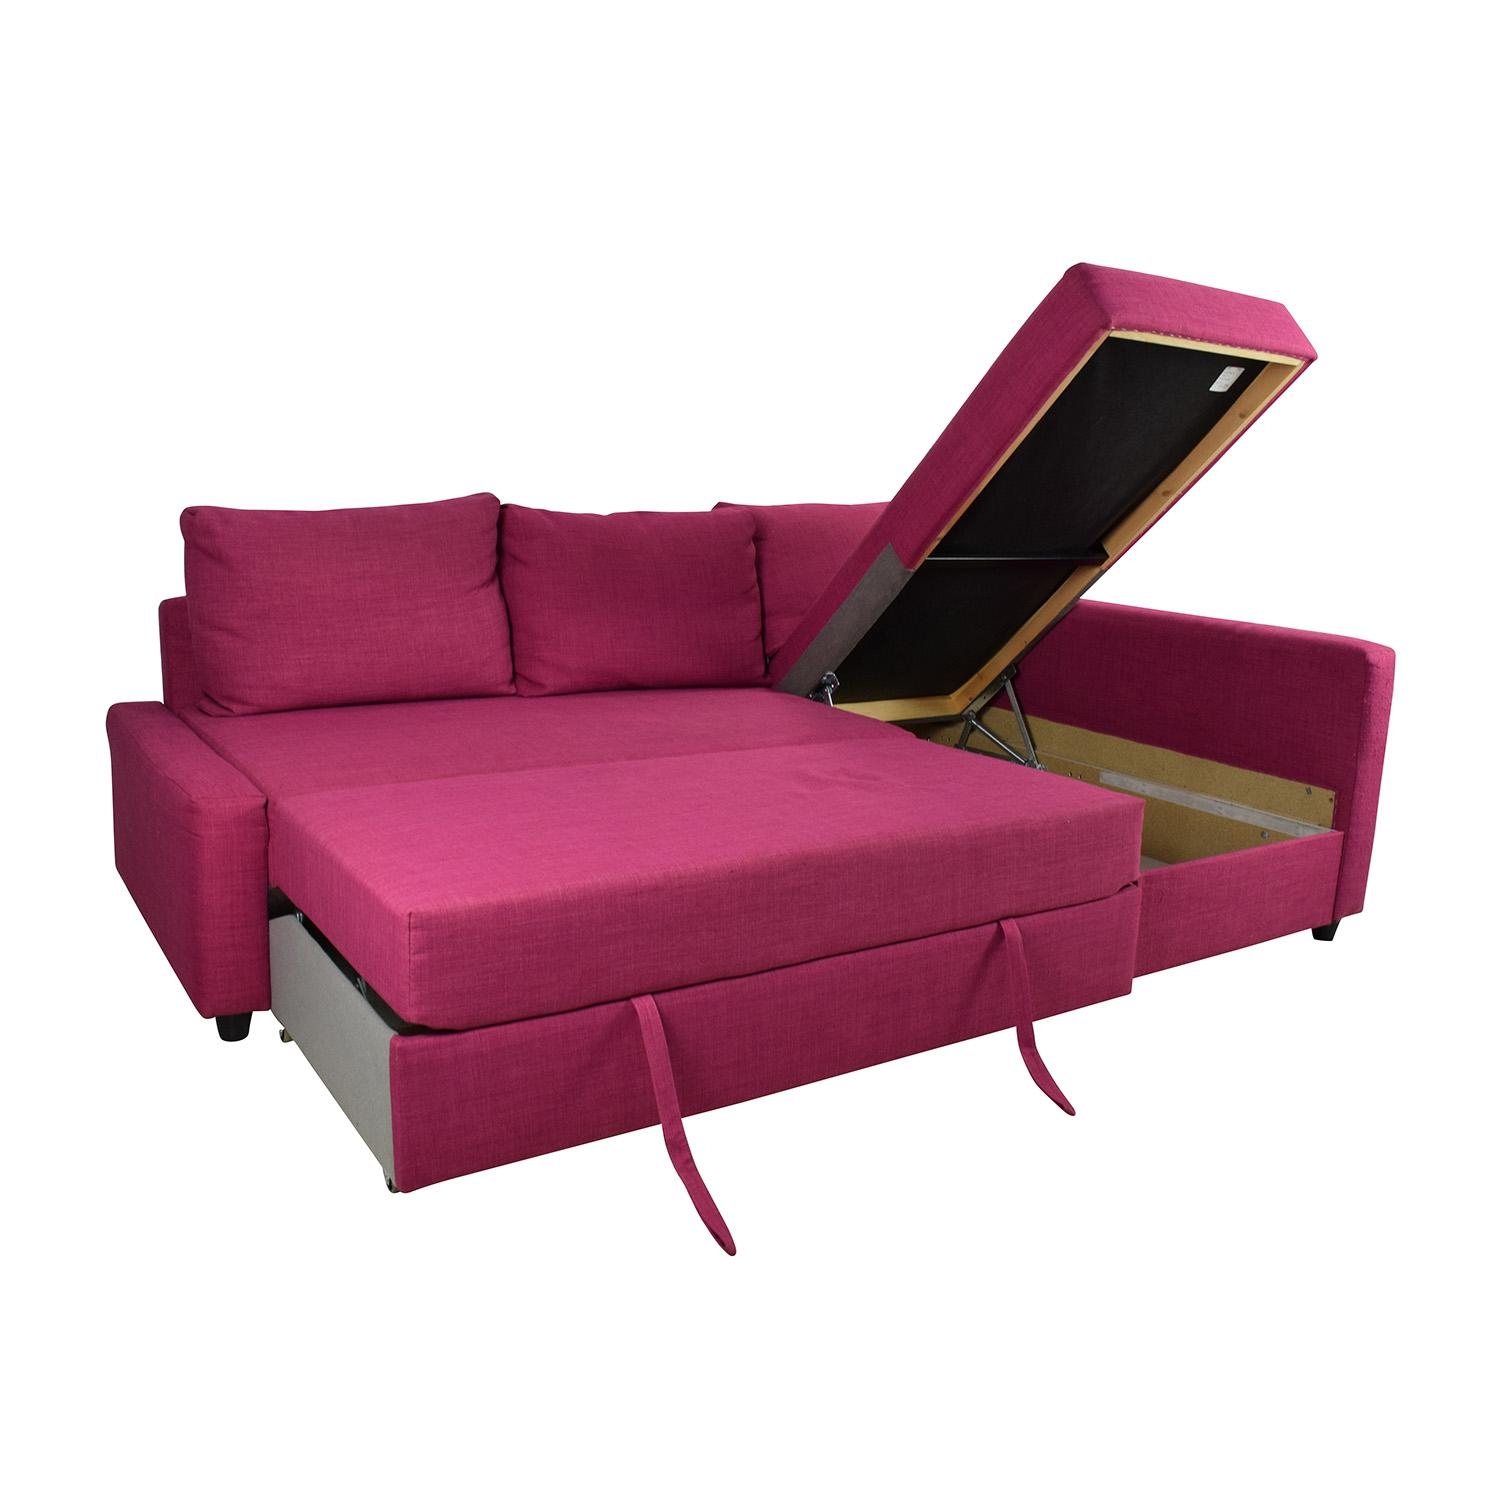 66% Off - Ikea Ikea Friheten Pink Sleeper Sofa / Sofas with regard to Ikea Sleeper Sofa Sectional